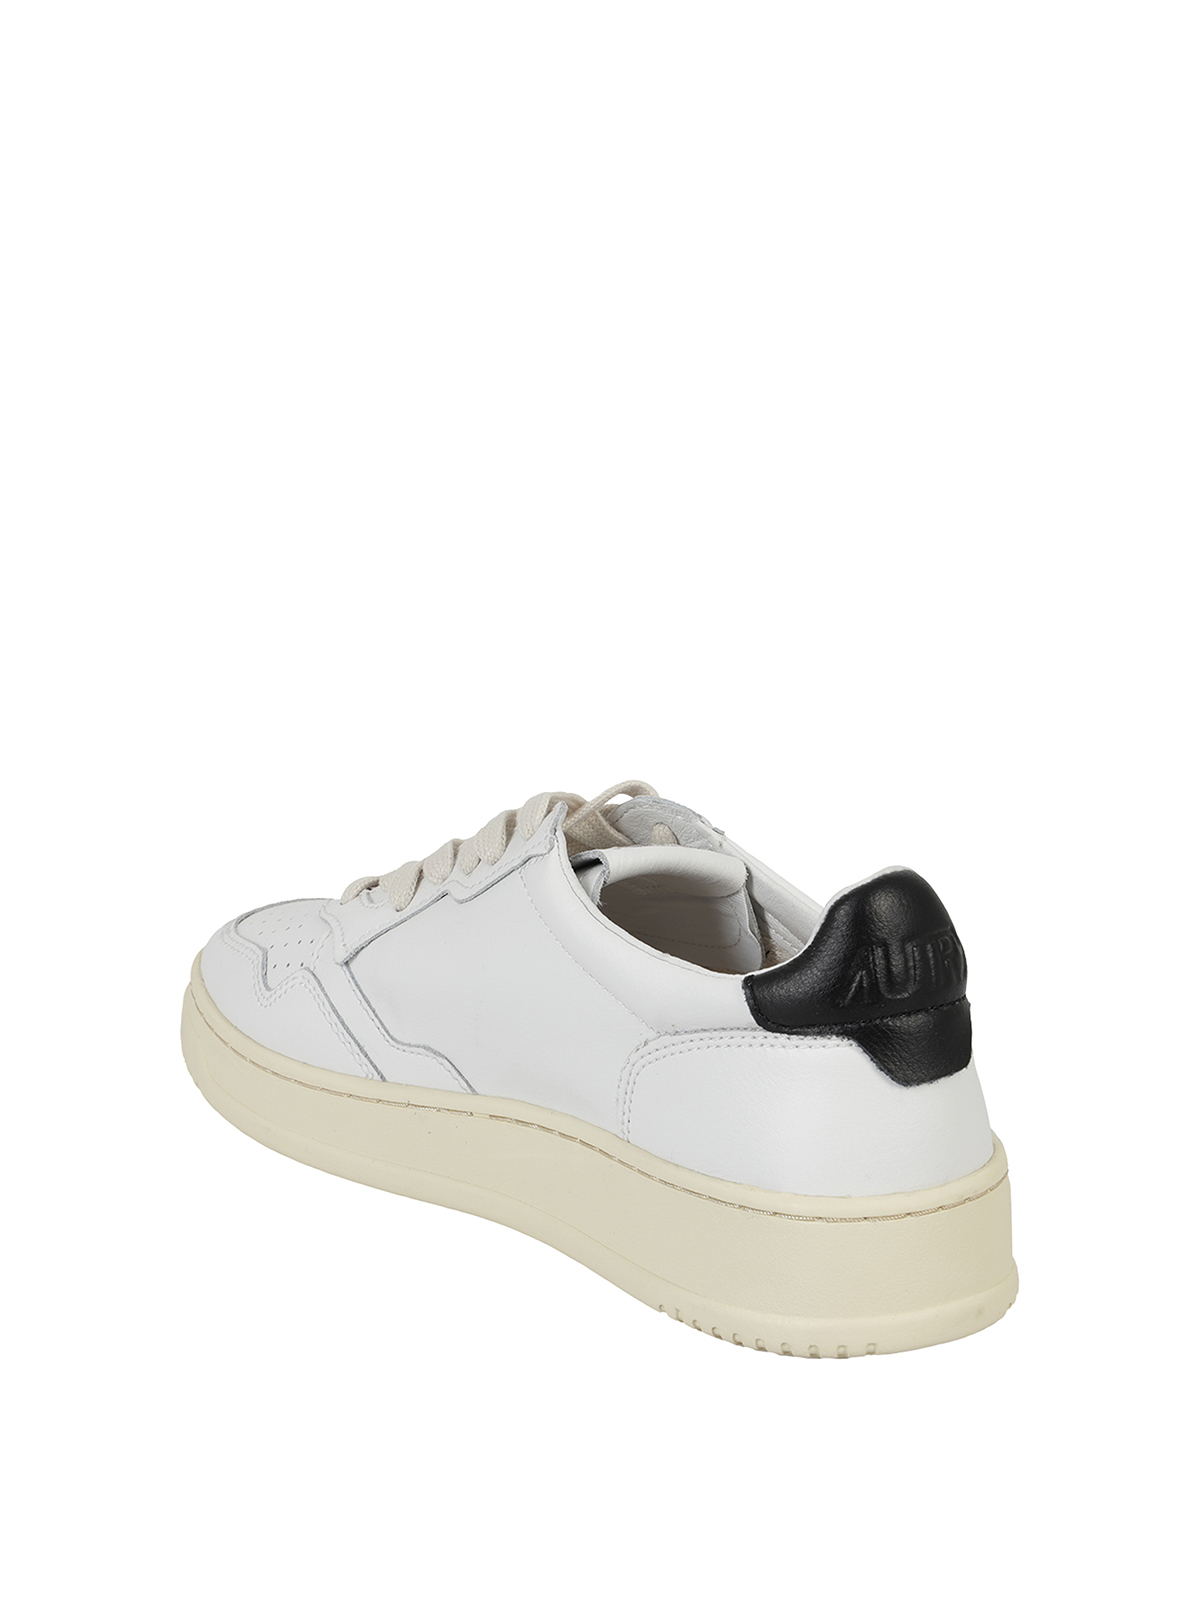 Immagine di Autry | Autry 01 Low Leather